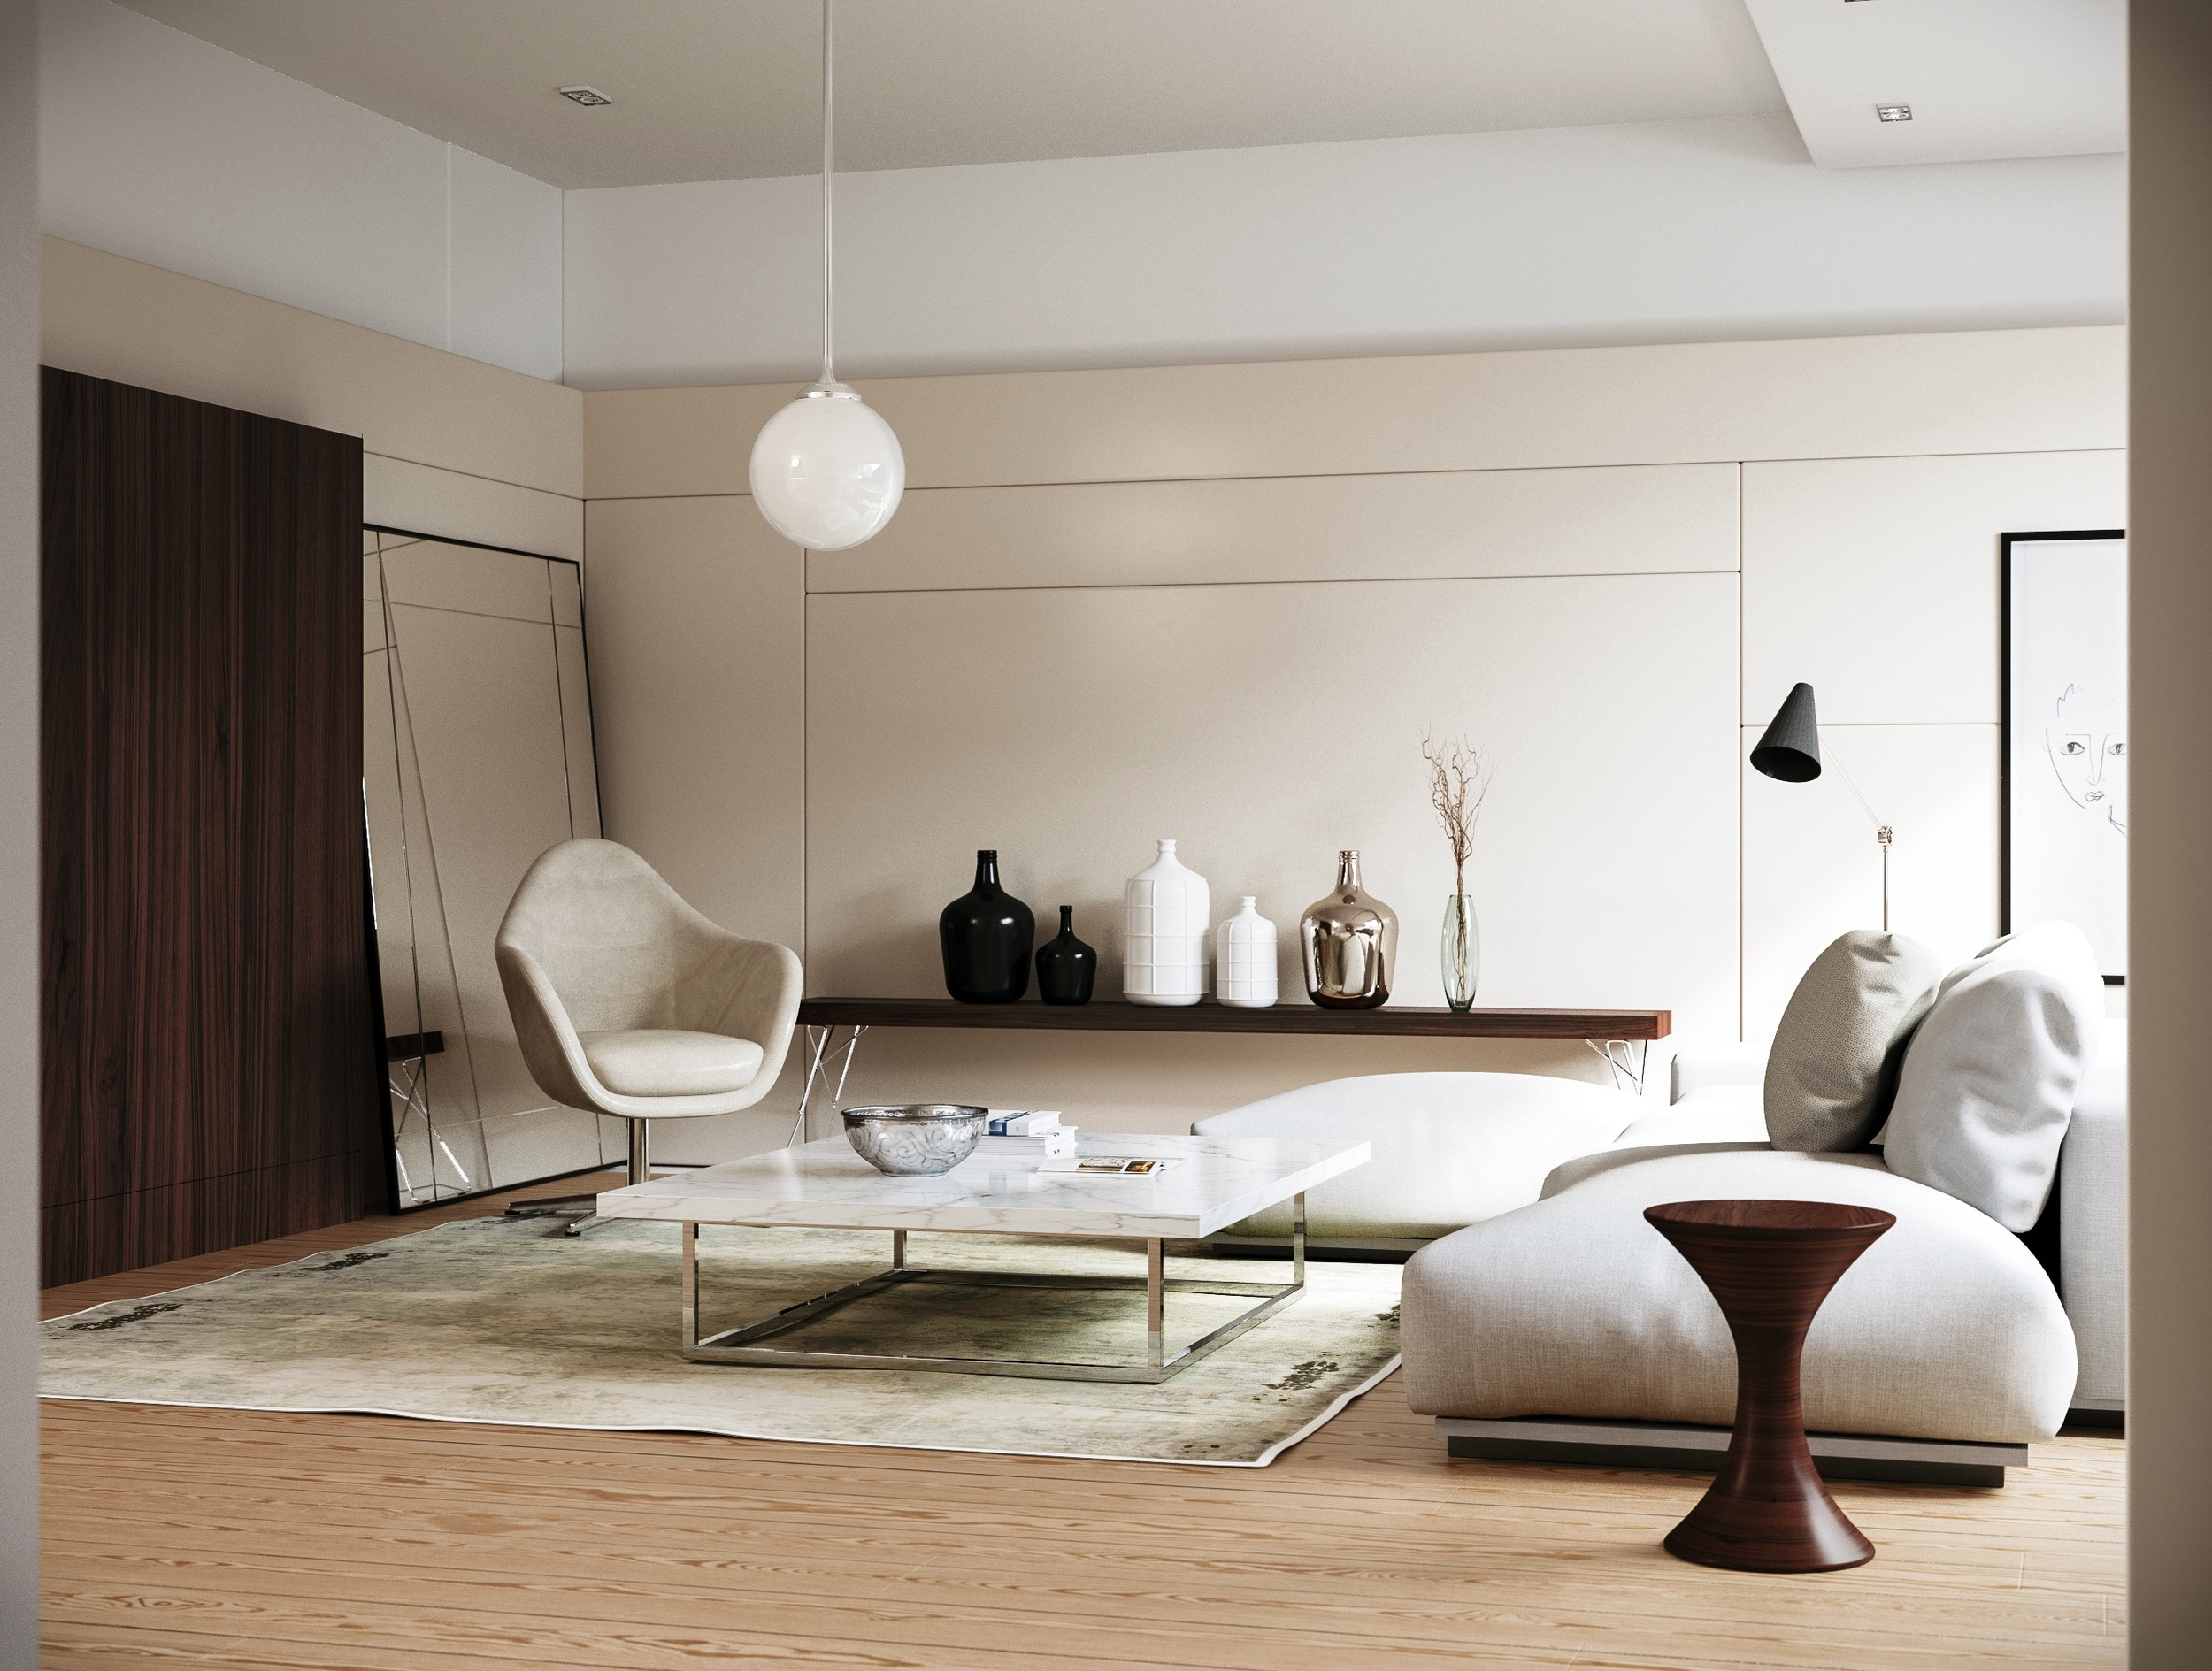 Full modern interior featuring leaning wall mirror